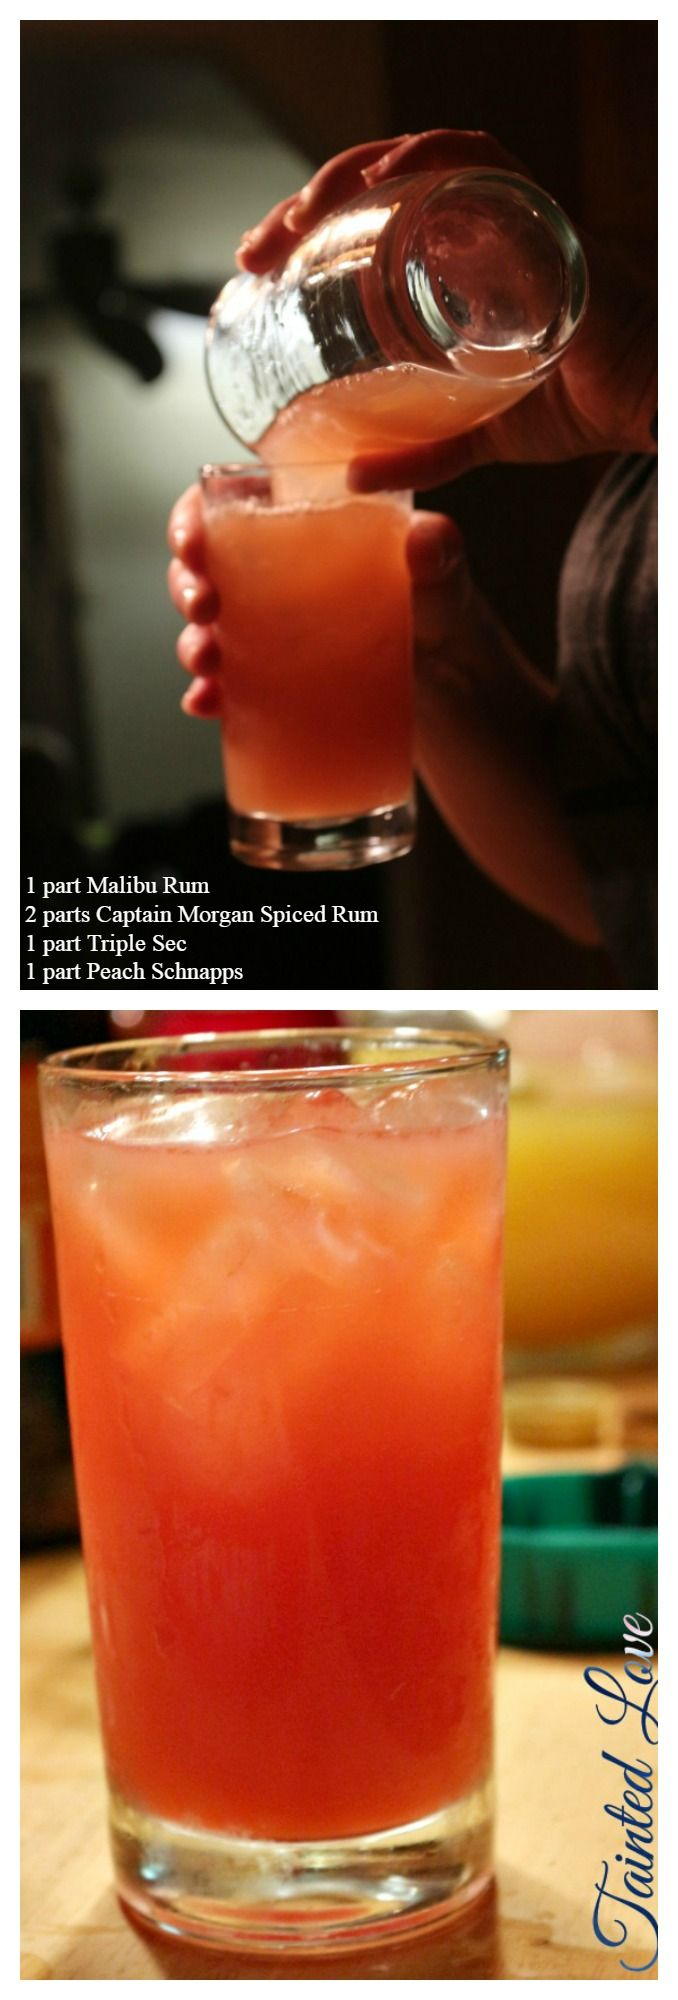 Tainted Love, Mixed drink with   1 part Malibu Rum 2 parts Captain Morgan Spiced Rum 1 part Triple Sec 1 part Peach Schnapps